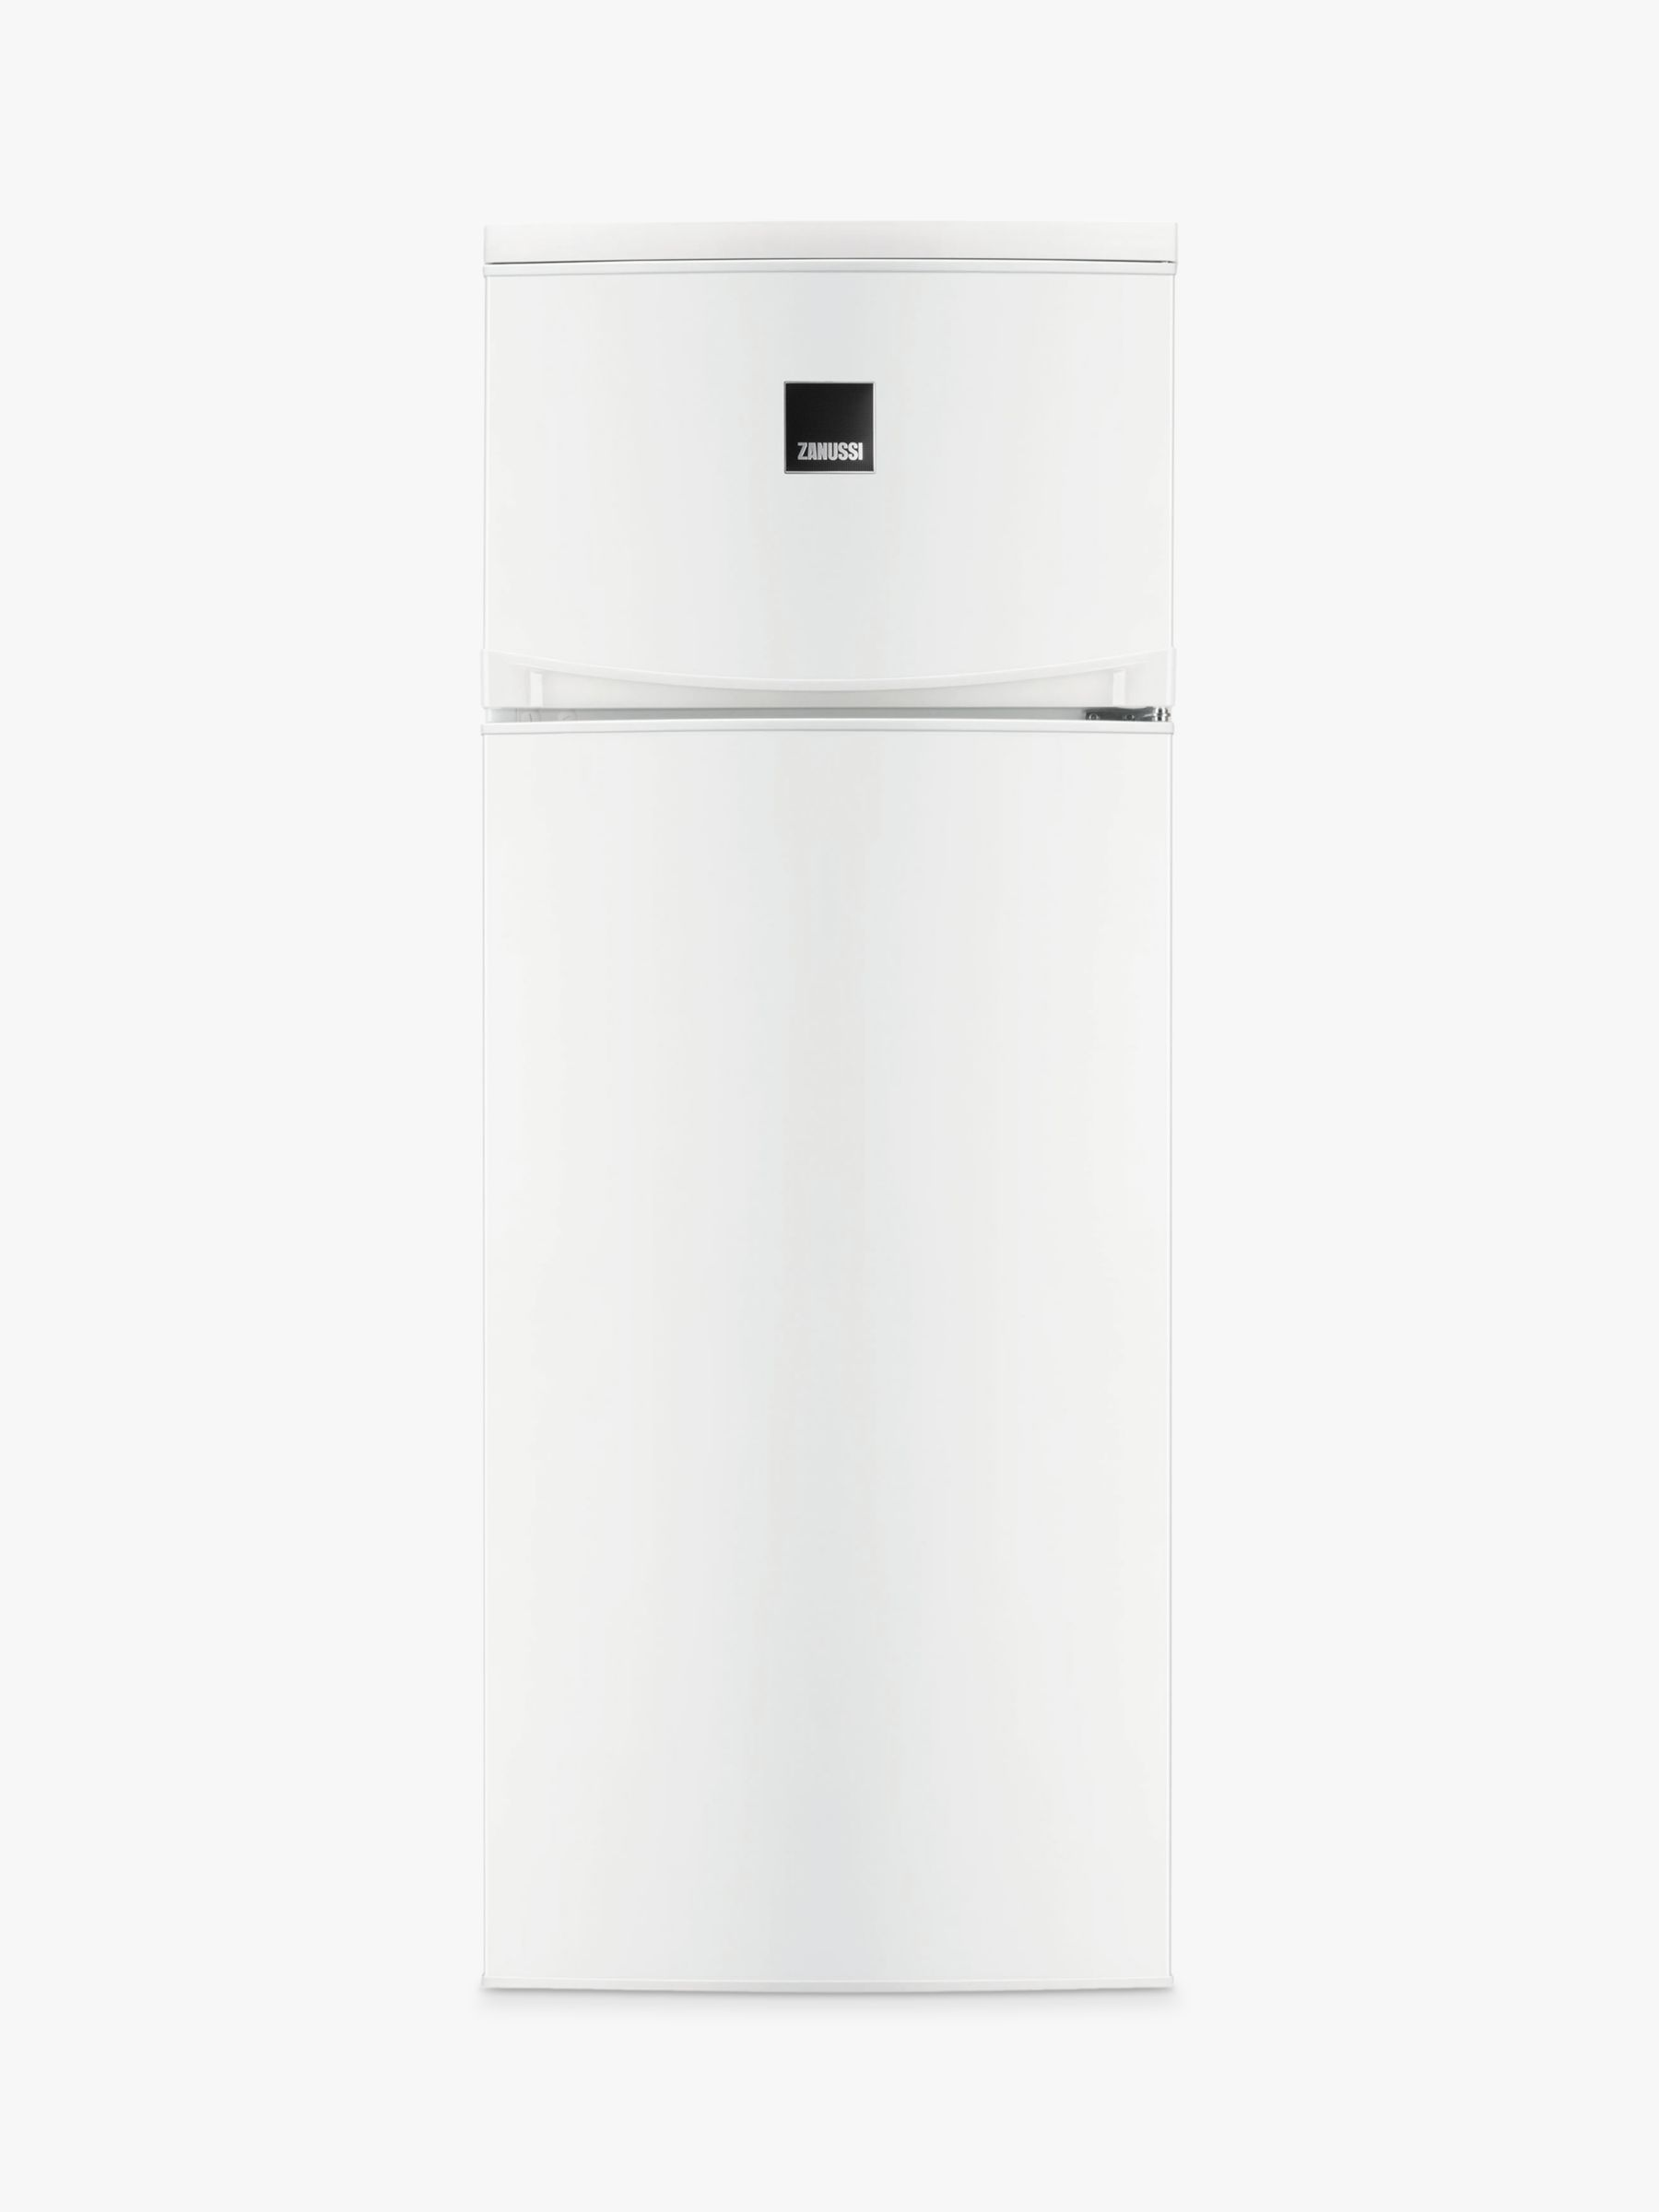 Zanussi Zanussi ZRT23103WV Freestanding Fridge Freezer, A+ Energy Rating, 55cm Wide, White